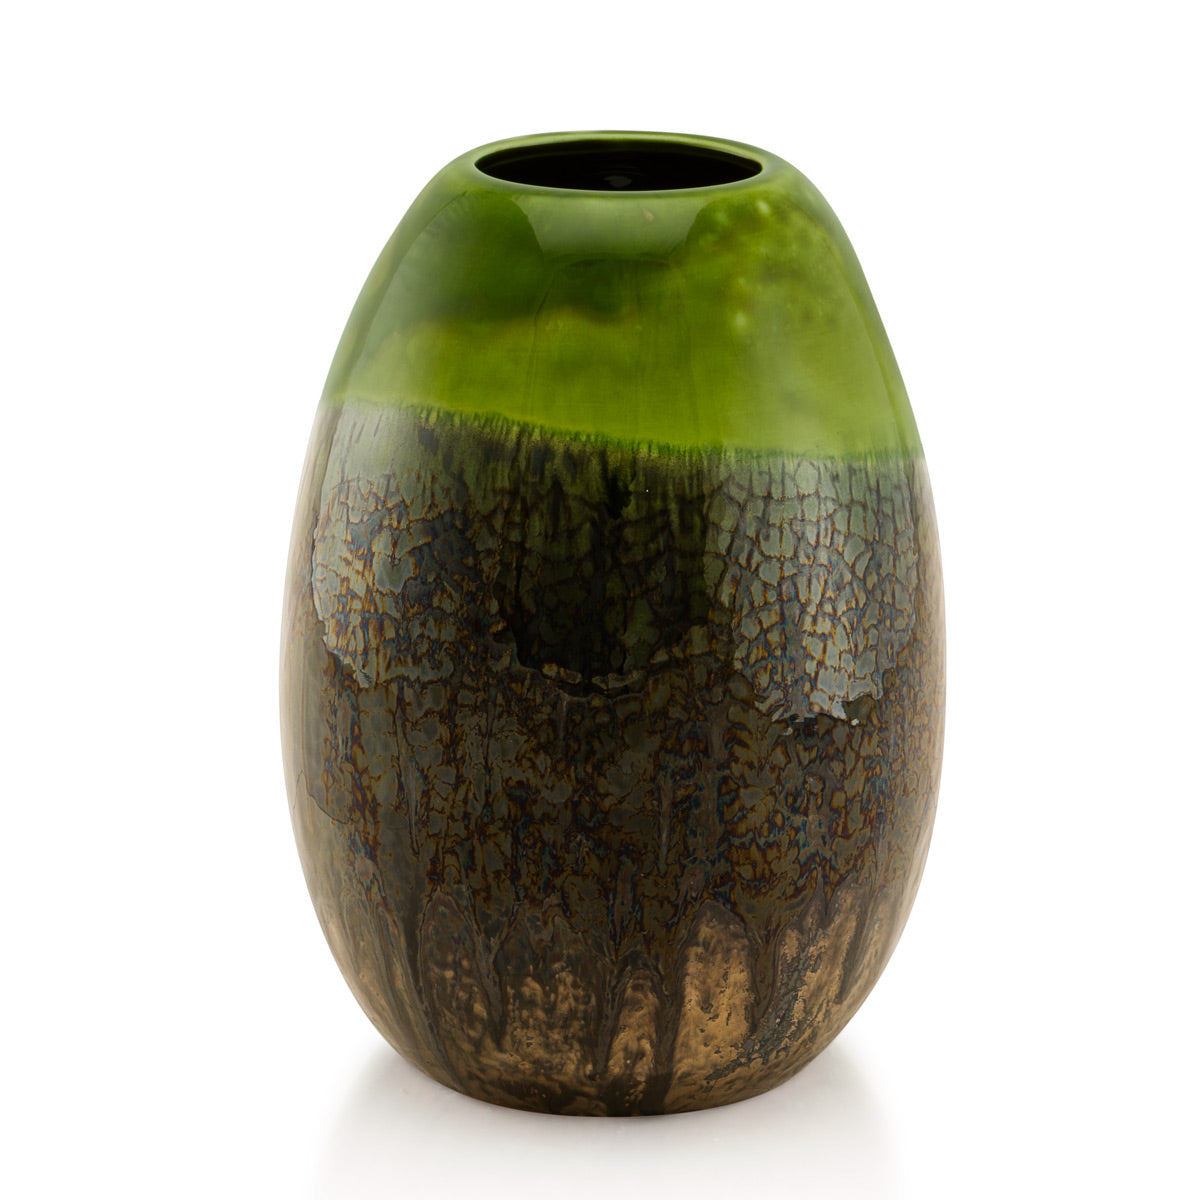 Ceramics-oval vase-green color-contemporary furniture